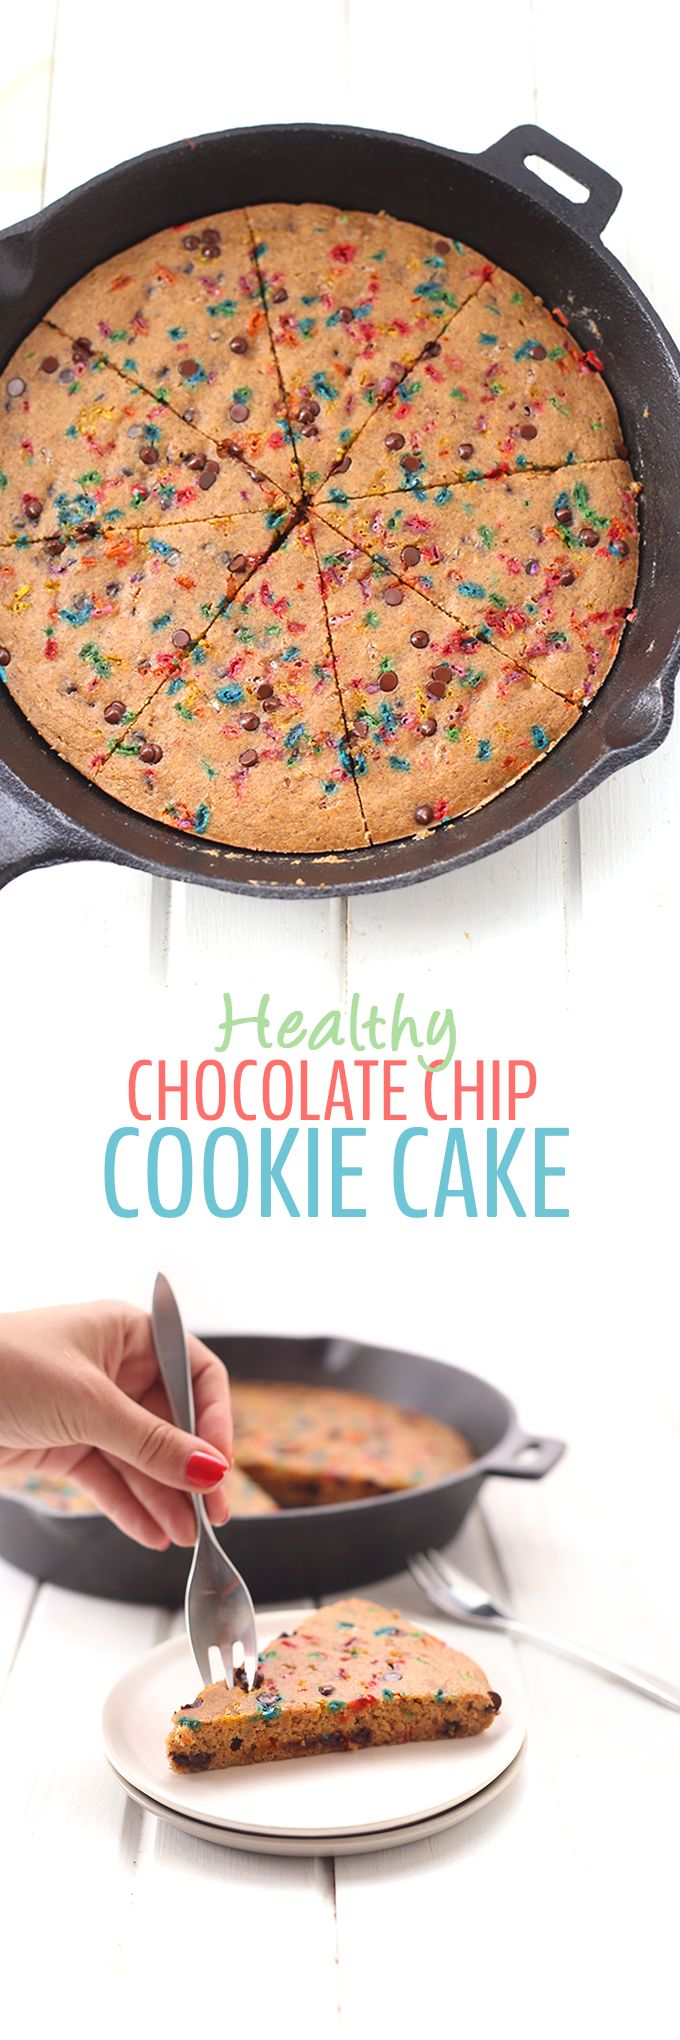 A recipe for Healthy Chocolate Chip Cookie Cake made with a secret ingredient! High in protein, and without any refined sugar, your celebrations will be the perfect combo of decadent and healthy!